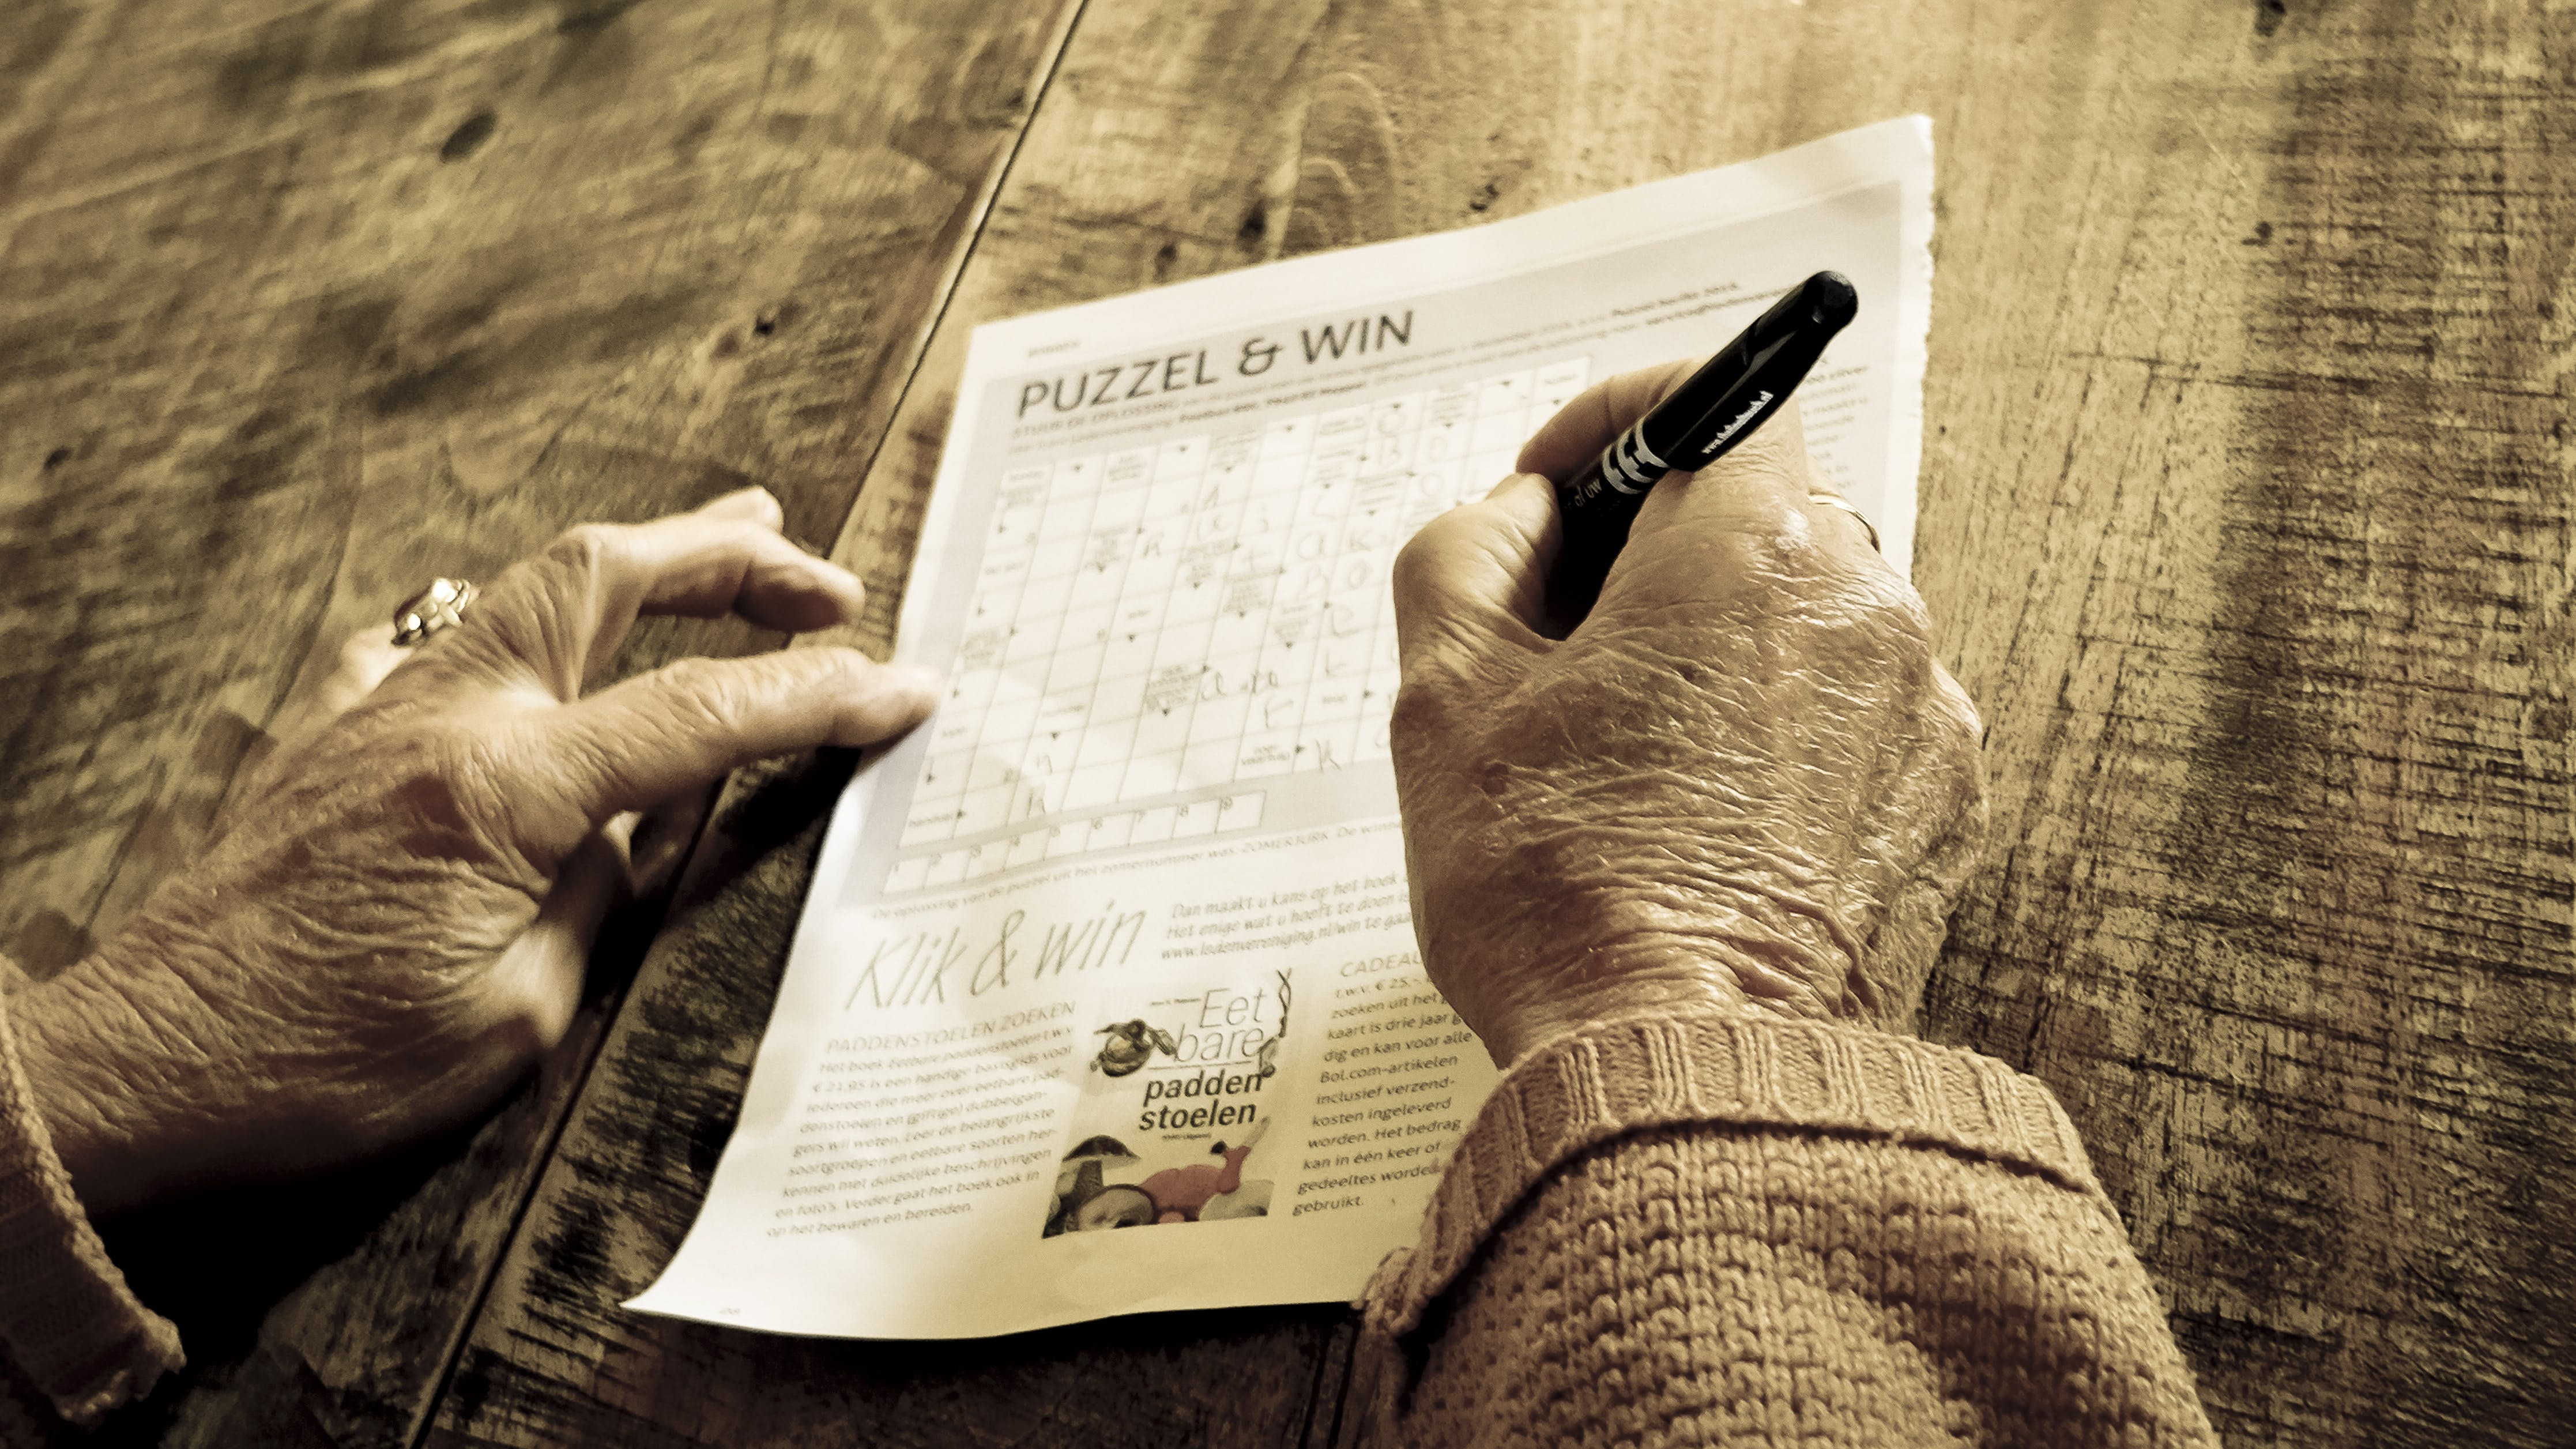 Person Writing on Puzzle & Win Paper